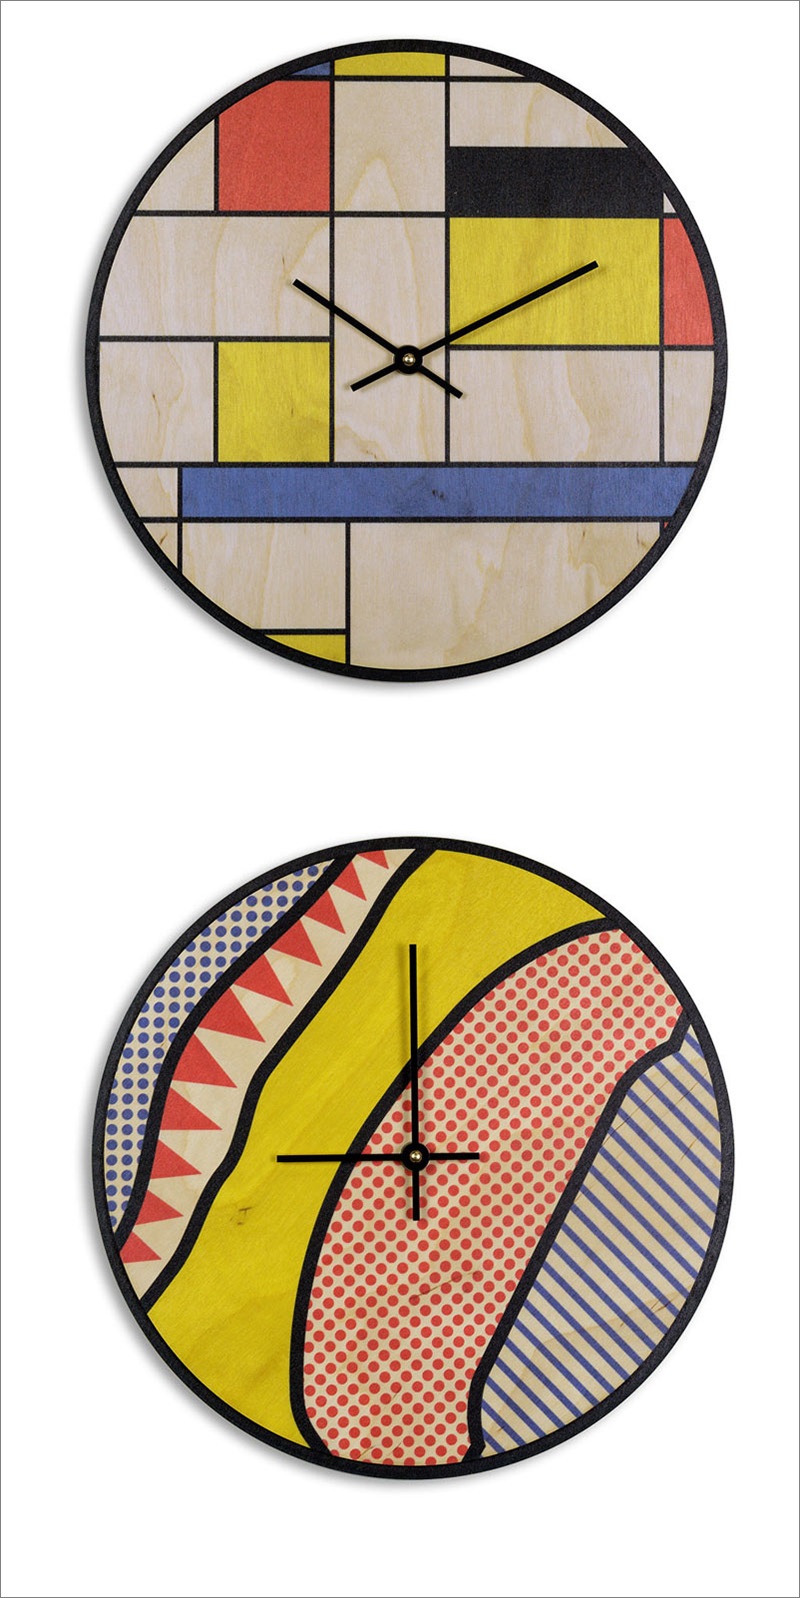 The fun colors and patterns on these Mondrian-inspired and pop art-inspired clocks make them a fun addition to any room in a modern home. #ModernWoodClock #WallClock #ModernDecor #ModernClock